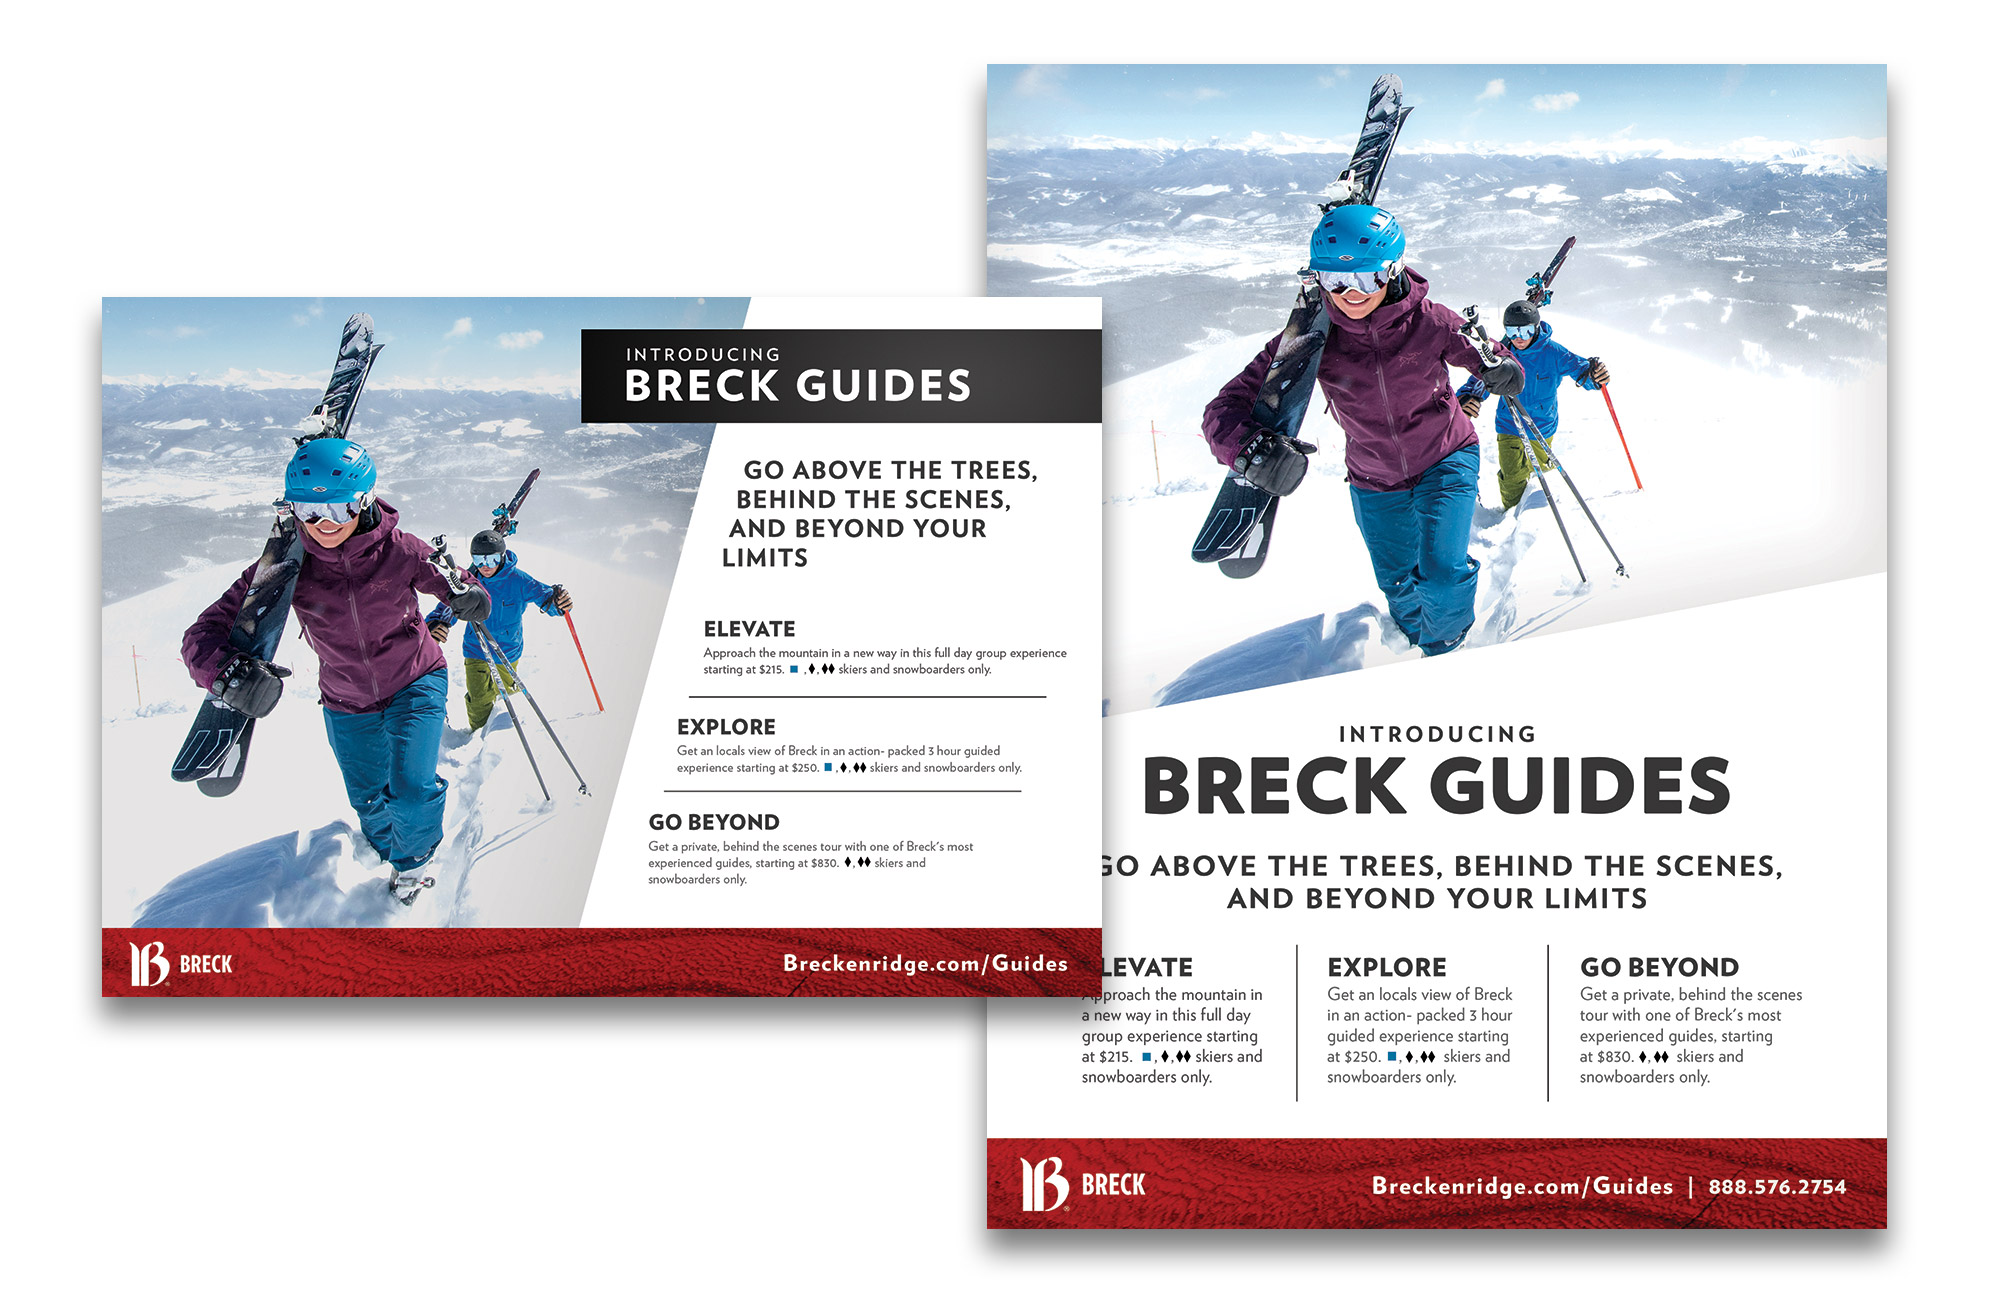 Breckenridge Guides Ads